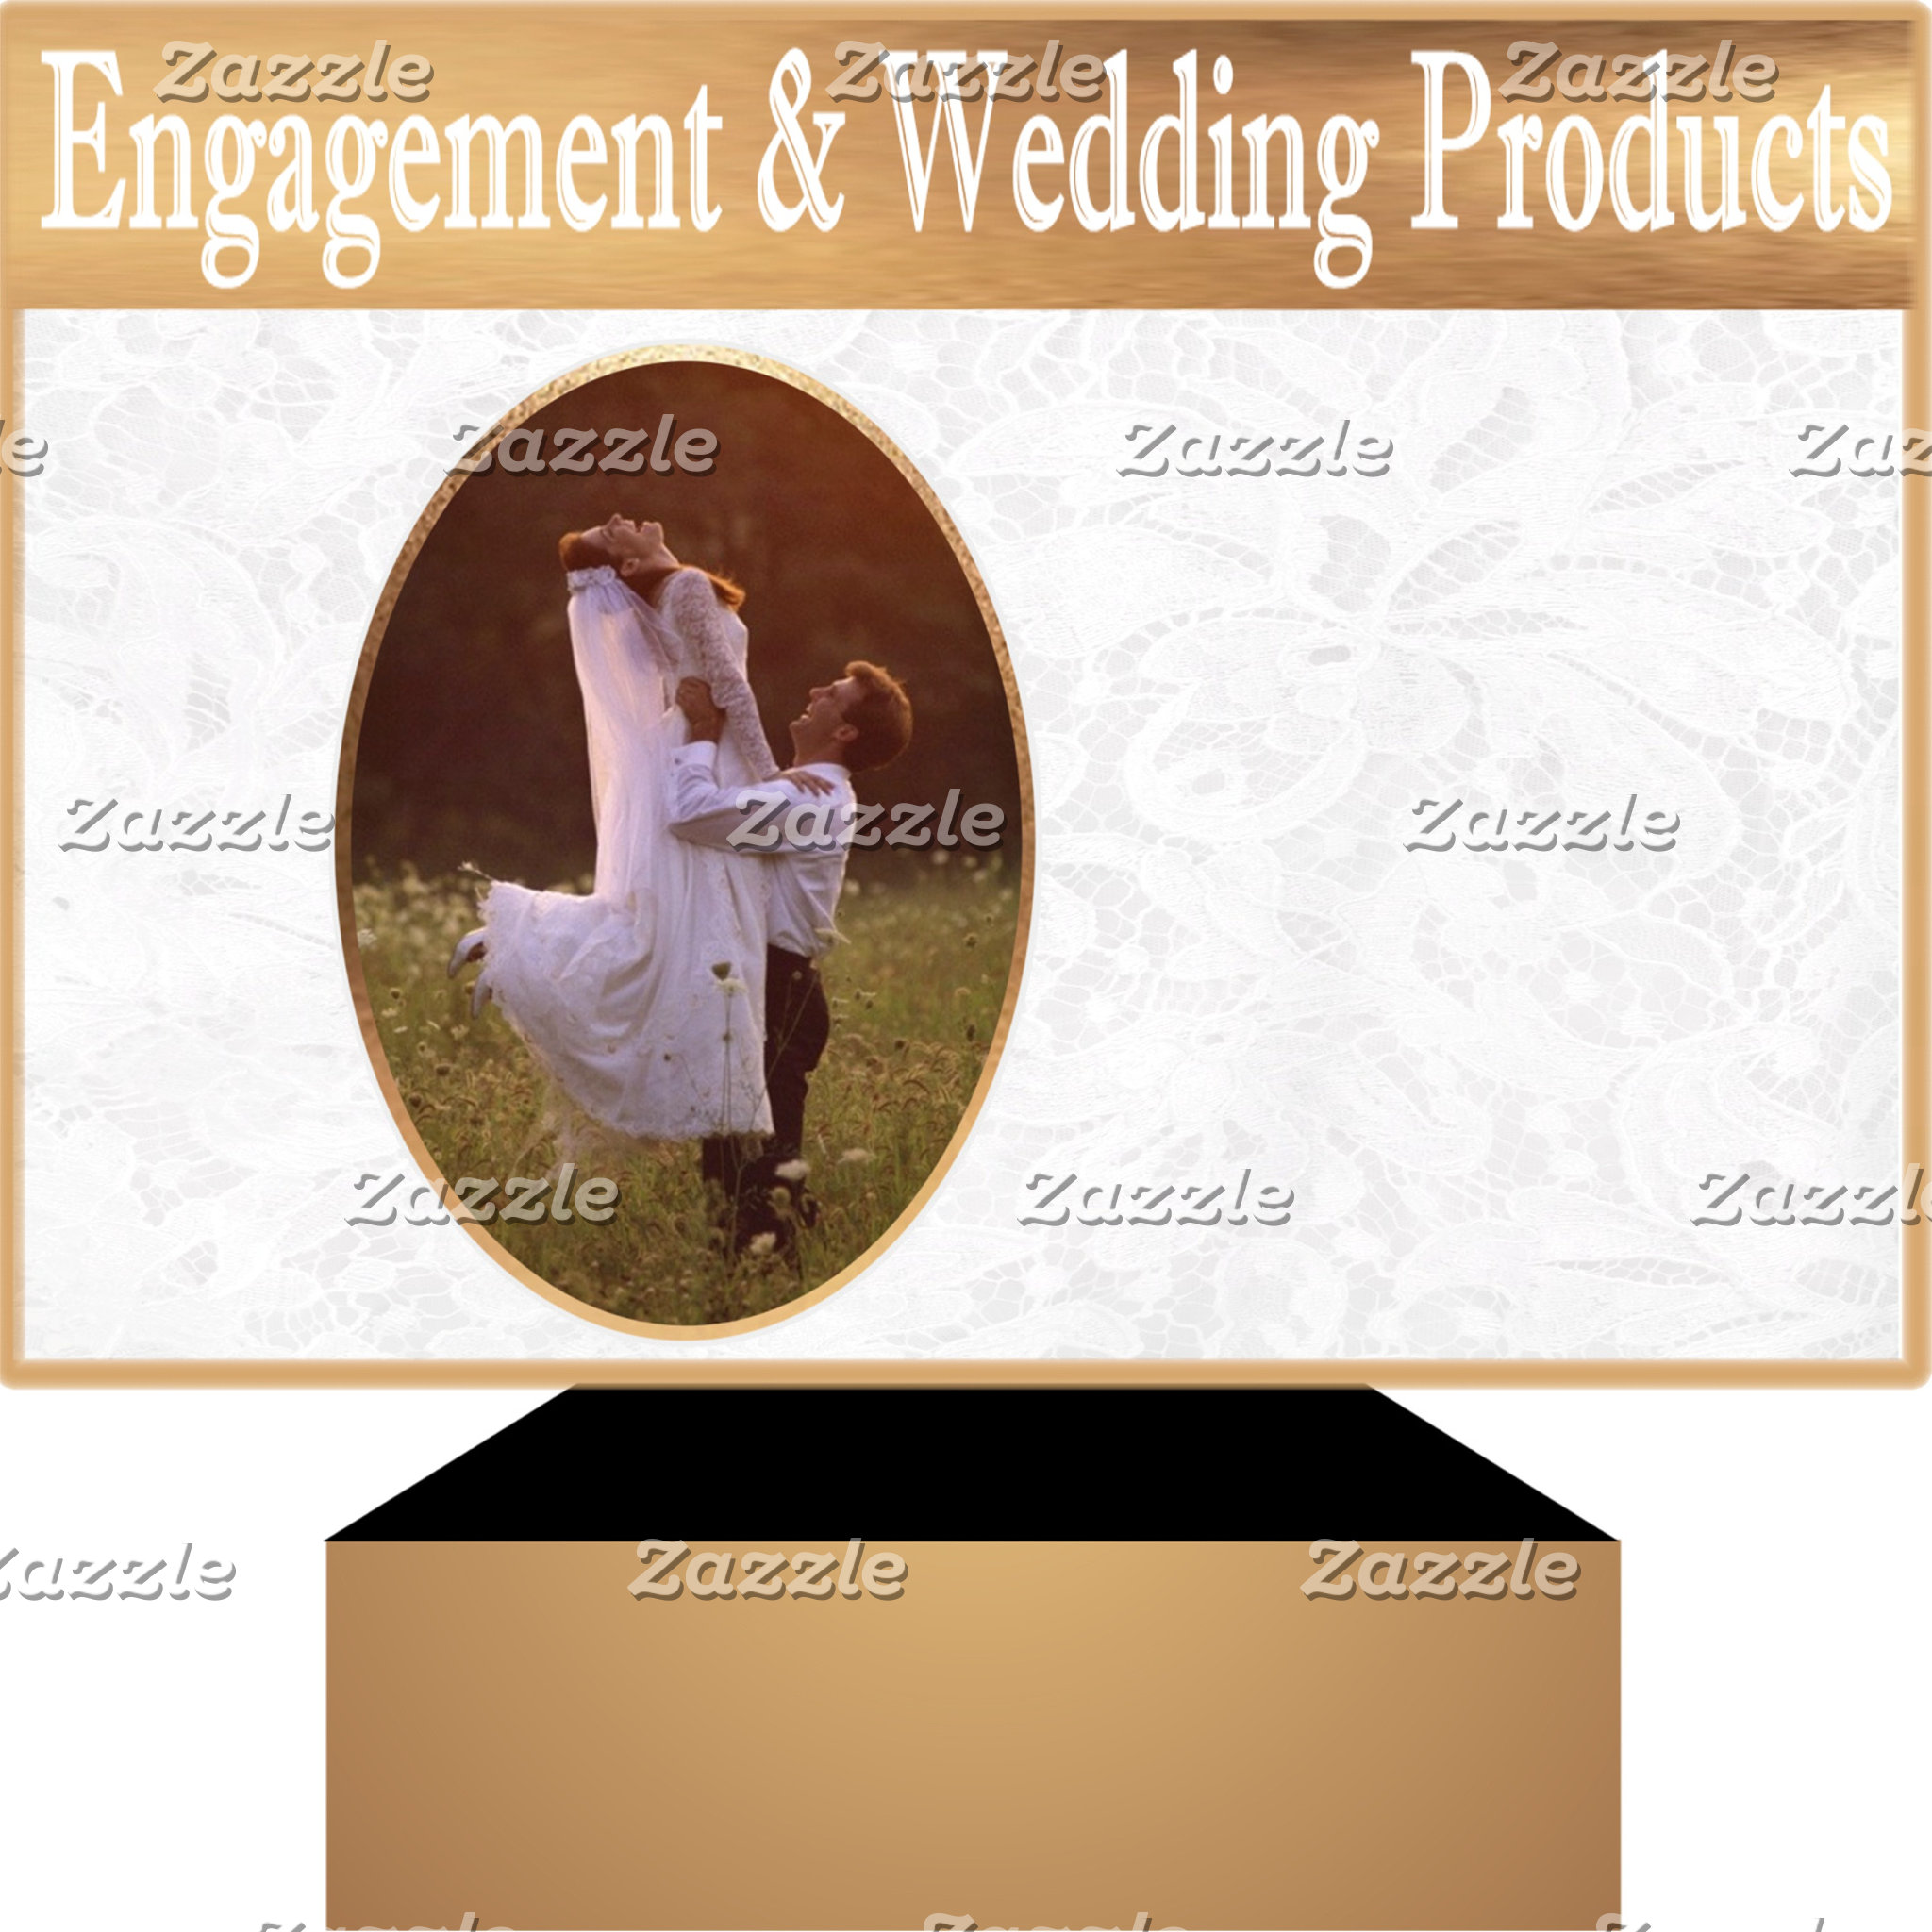 Wedding & Engagement Products